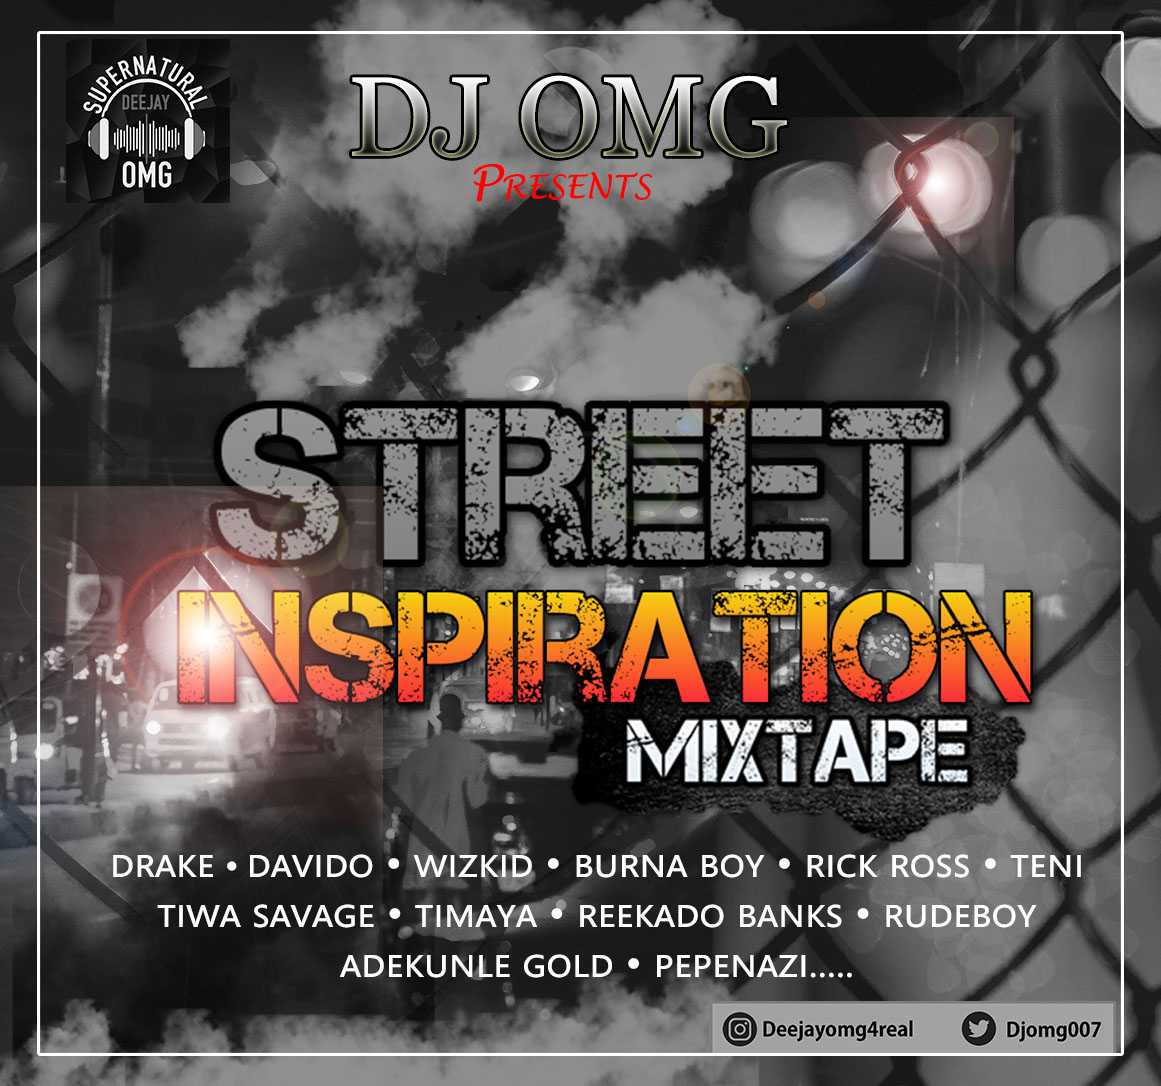 Mixtape: Supernatural Dj OMG - Street Inspiration Mix